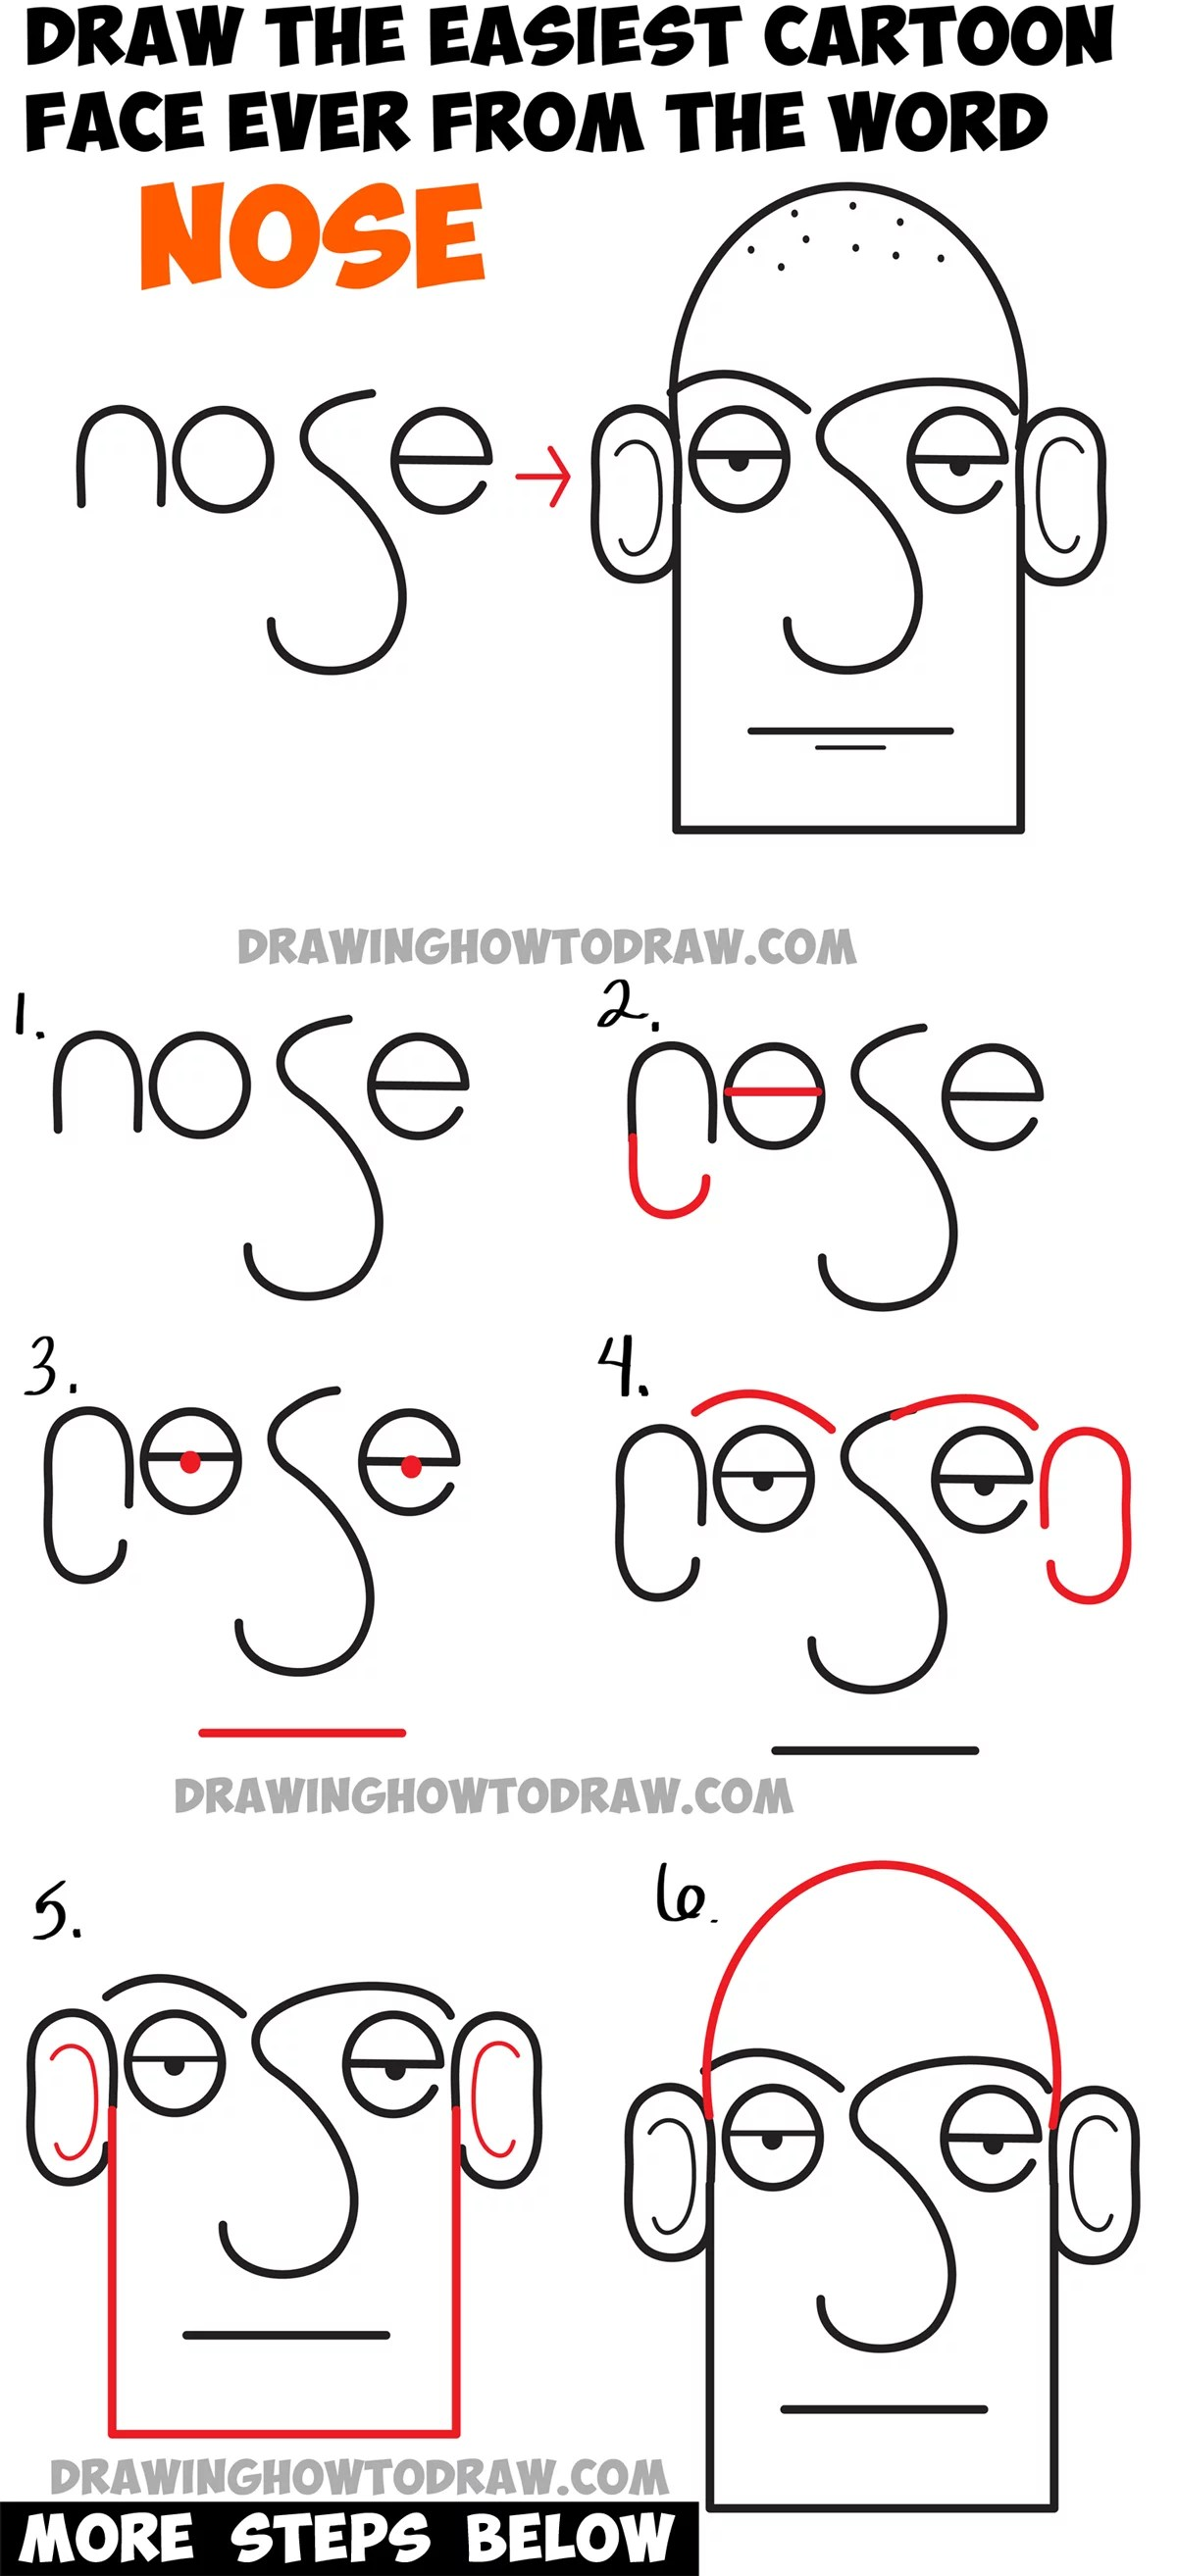 how to make a diagram in word coleman mobile home gas furnace wiring draw cartoon face easiest way ever from the